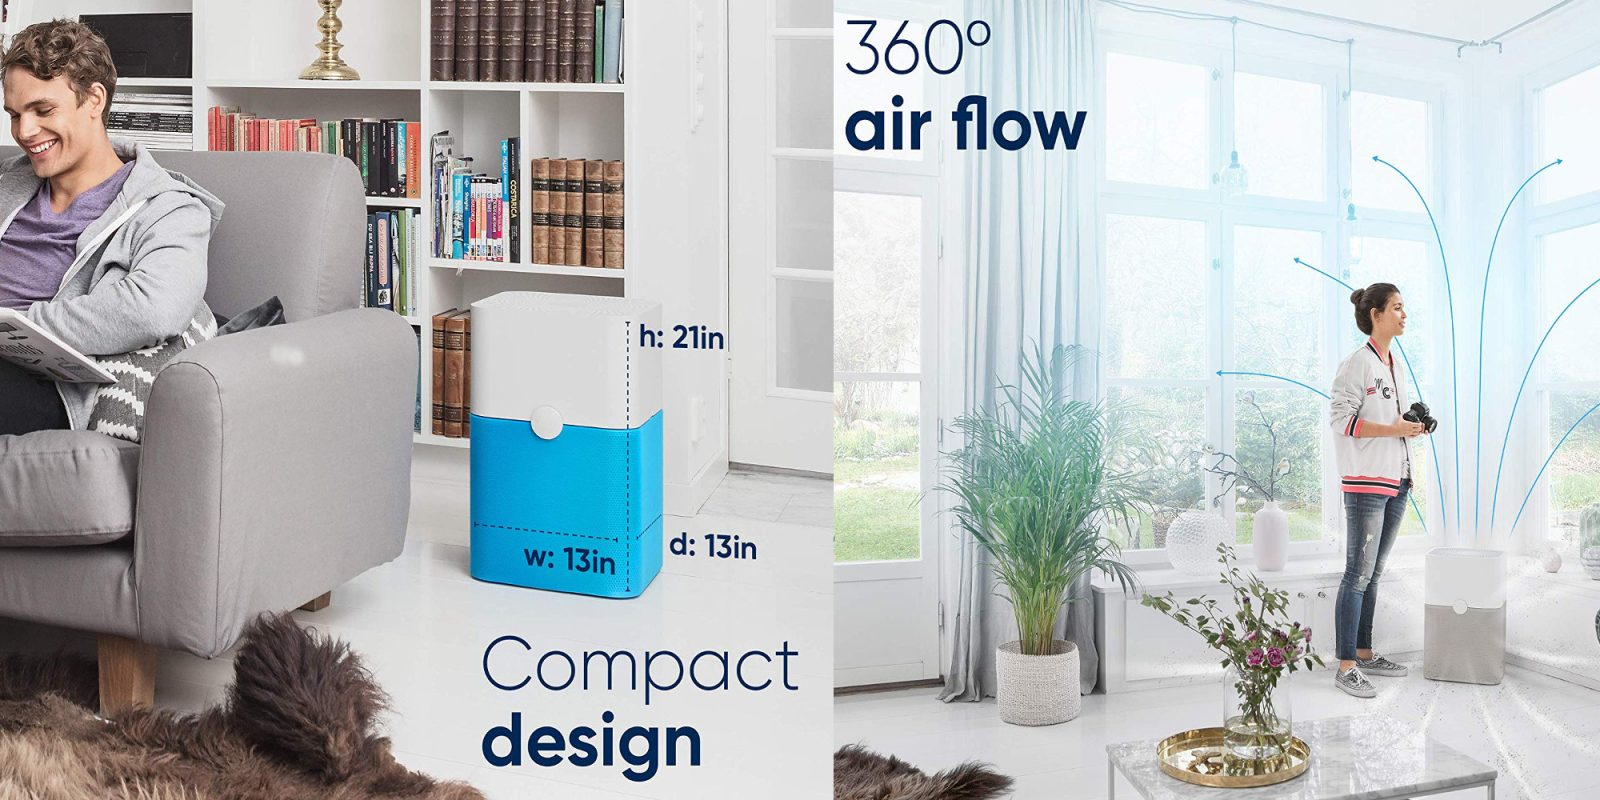 The Blue Pure 211+ Air Purifier is up to $100 off at Amazon, now $199 shipped